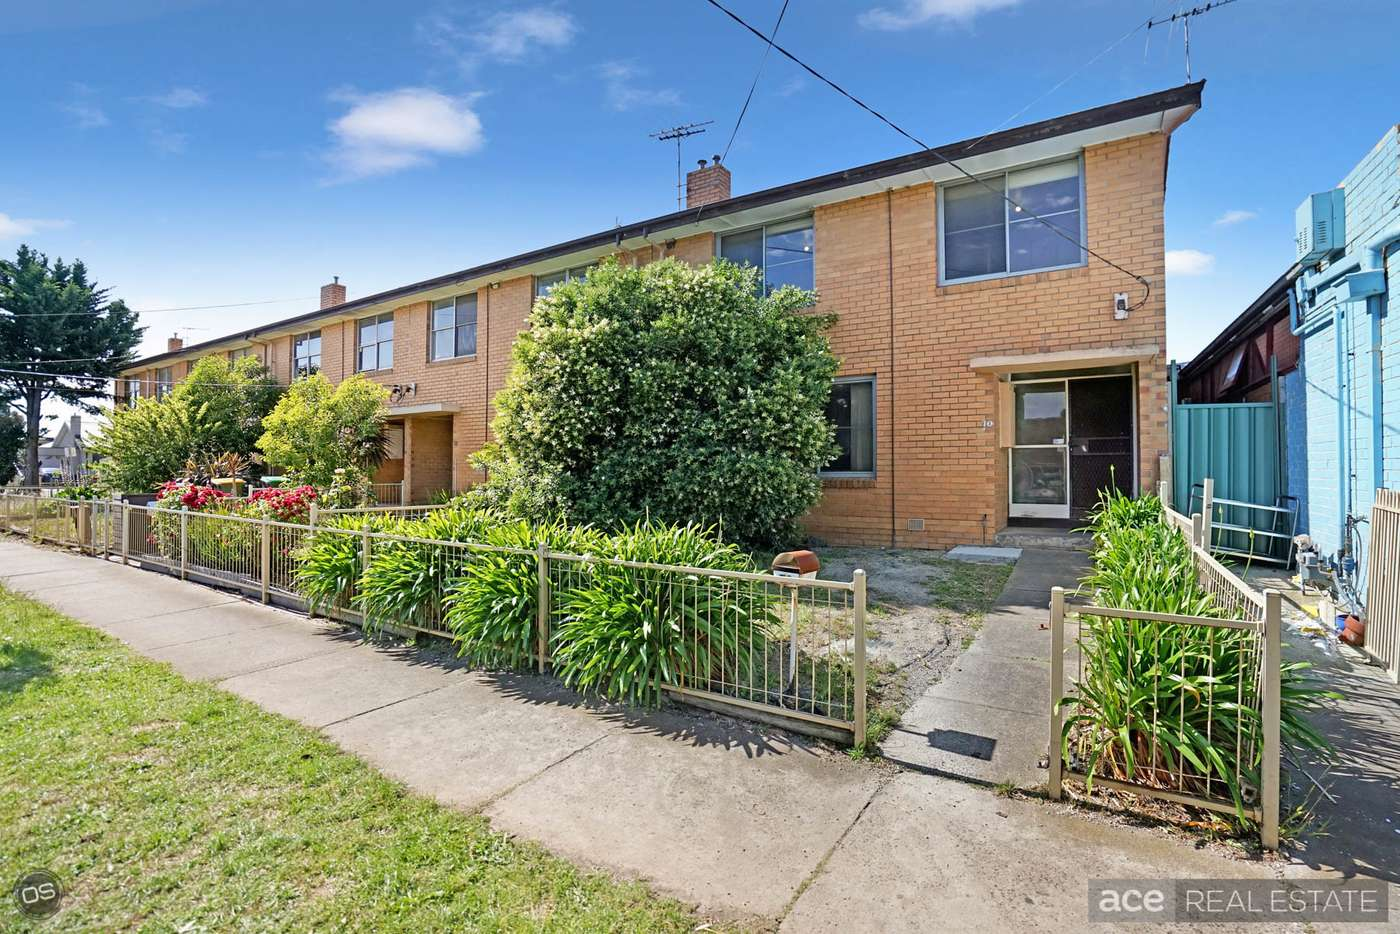 Main view of Homely house listing, 70 Woods Street, Laverton VIC 3028